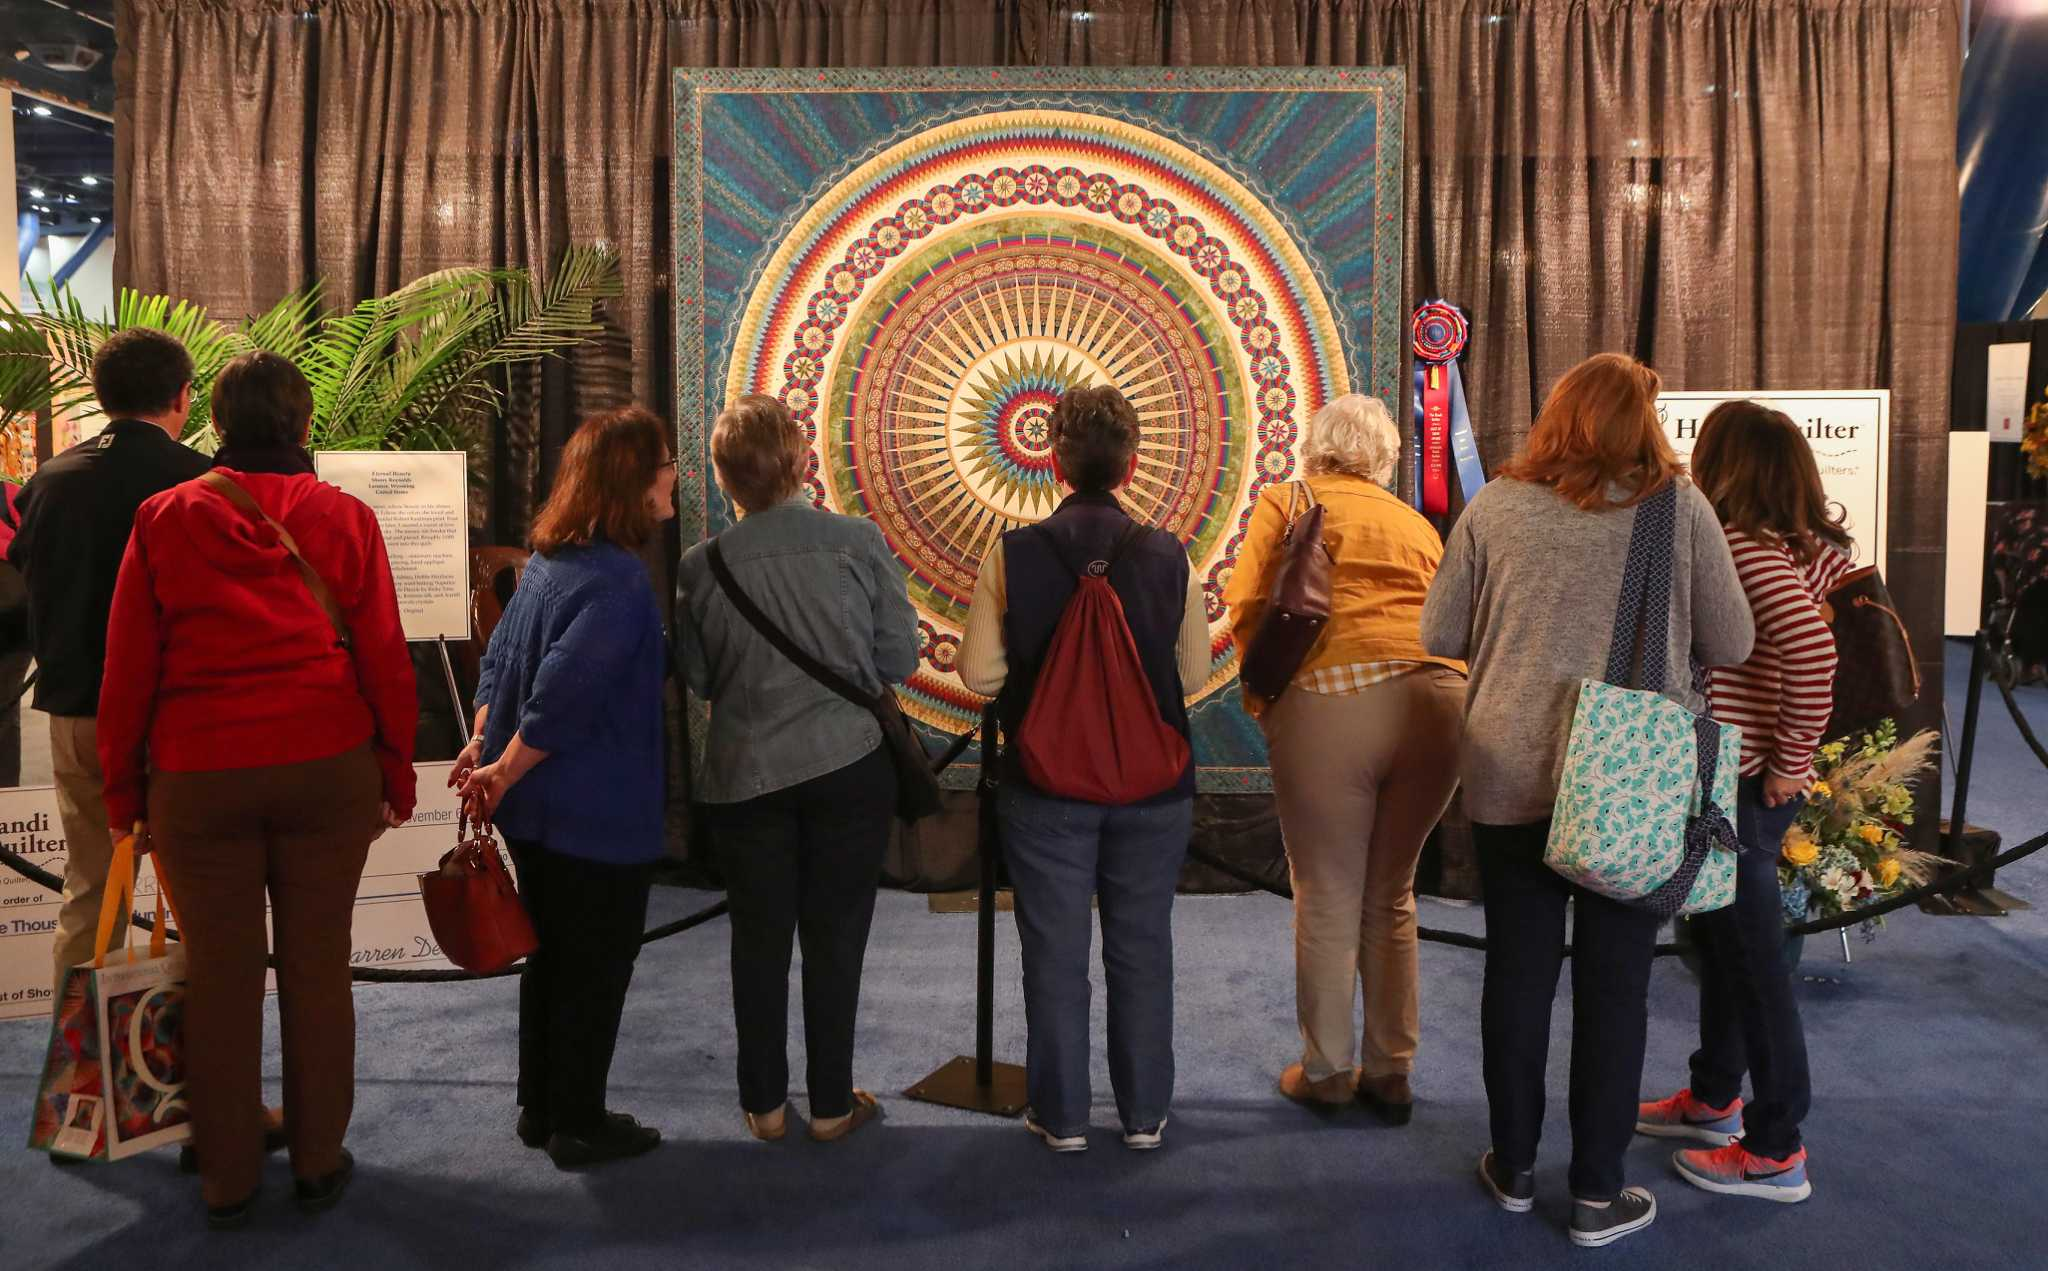 Quilt Festival Birmingham Largest U S Quilting Festival Draws Enthusiasts From Around The